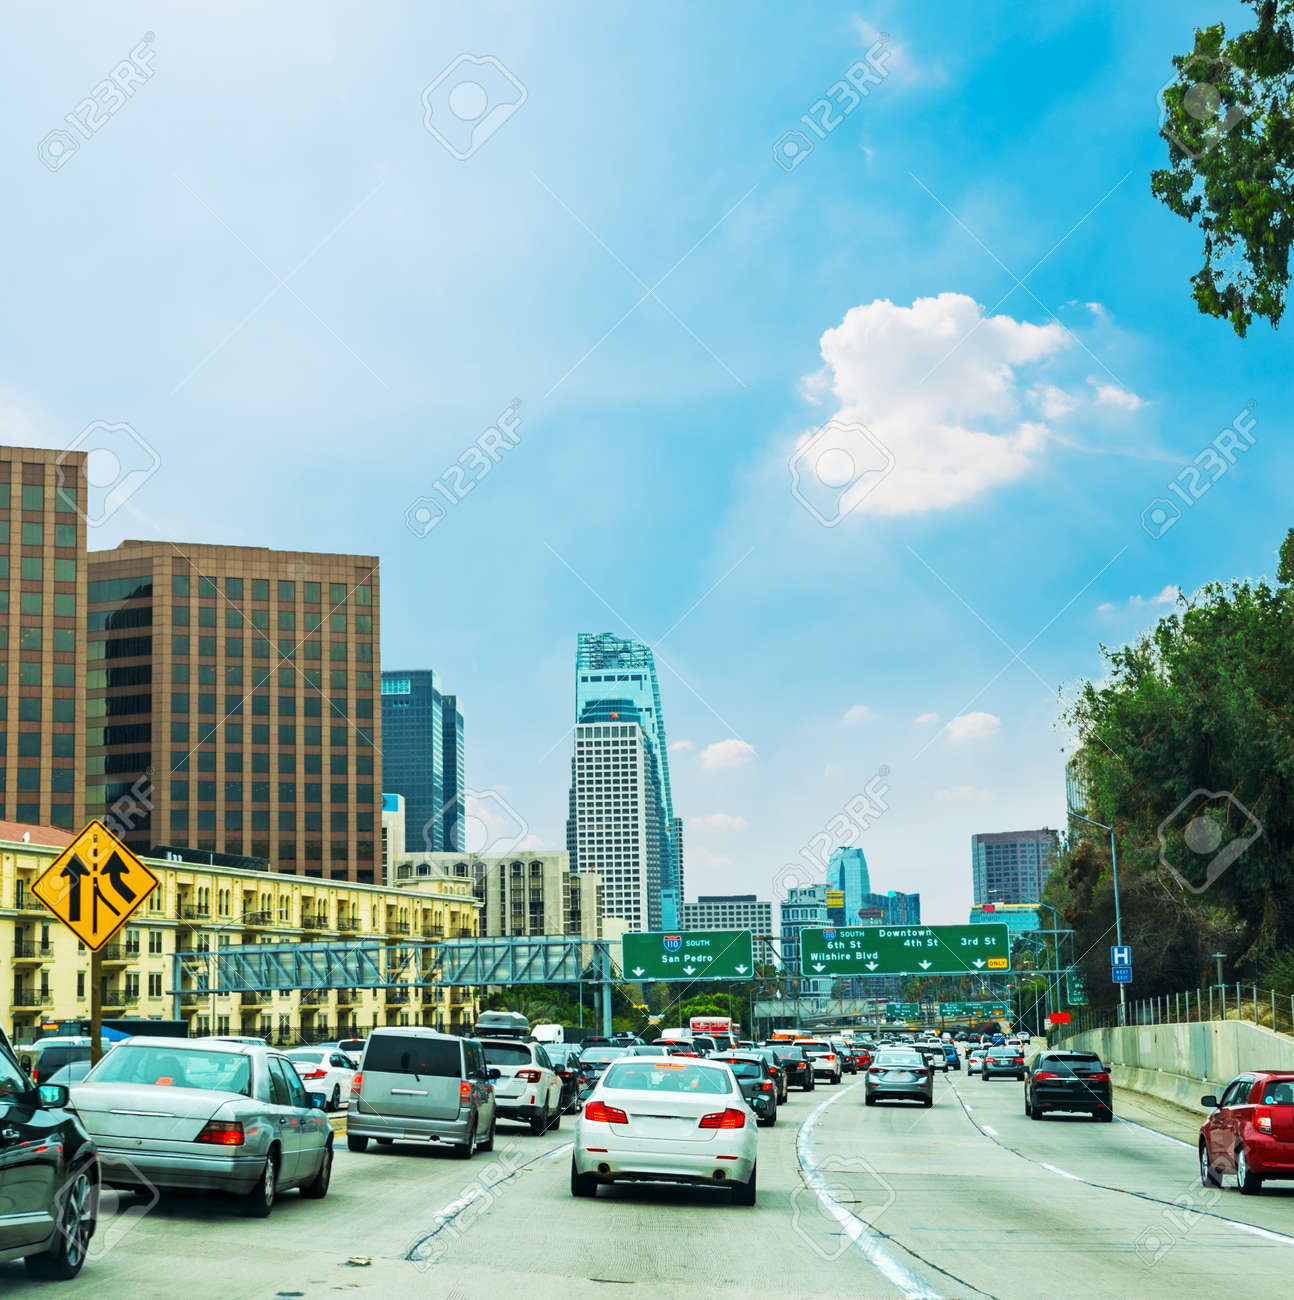 Traffic in 110 freeway in Los Angeles, California